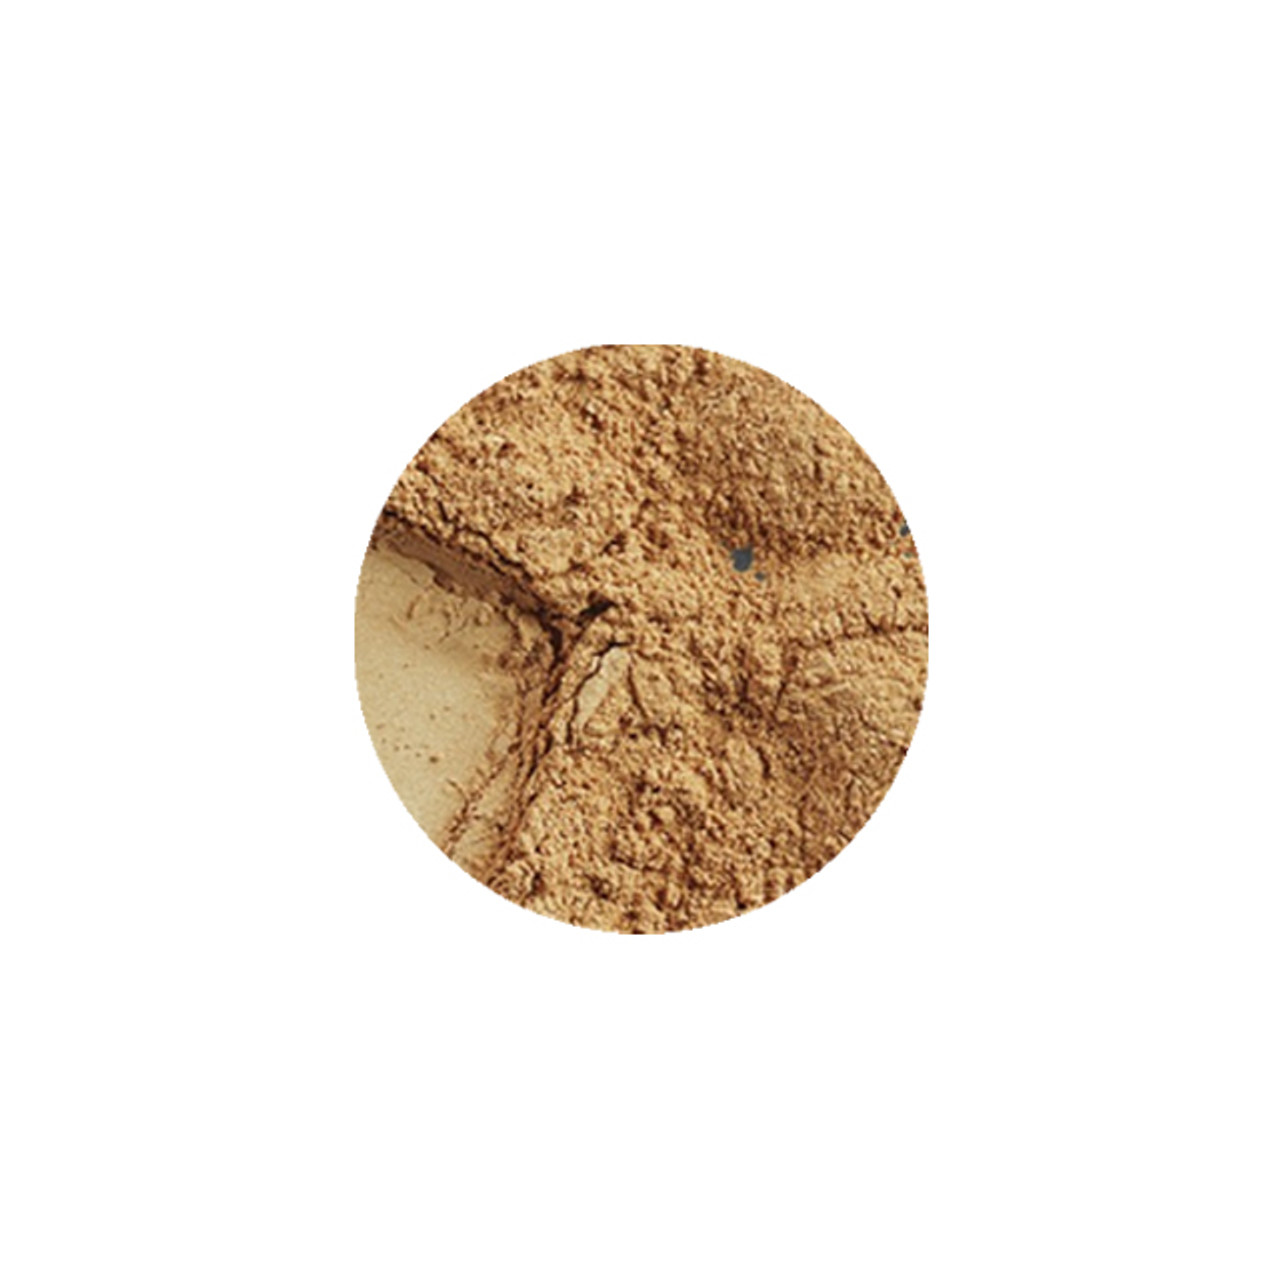 Colorescience Loose Mineral Foundation Powder Brush SPF 20